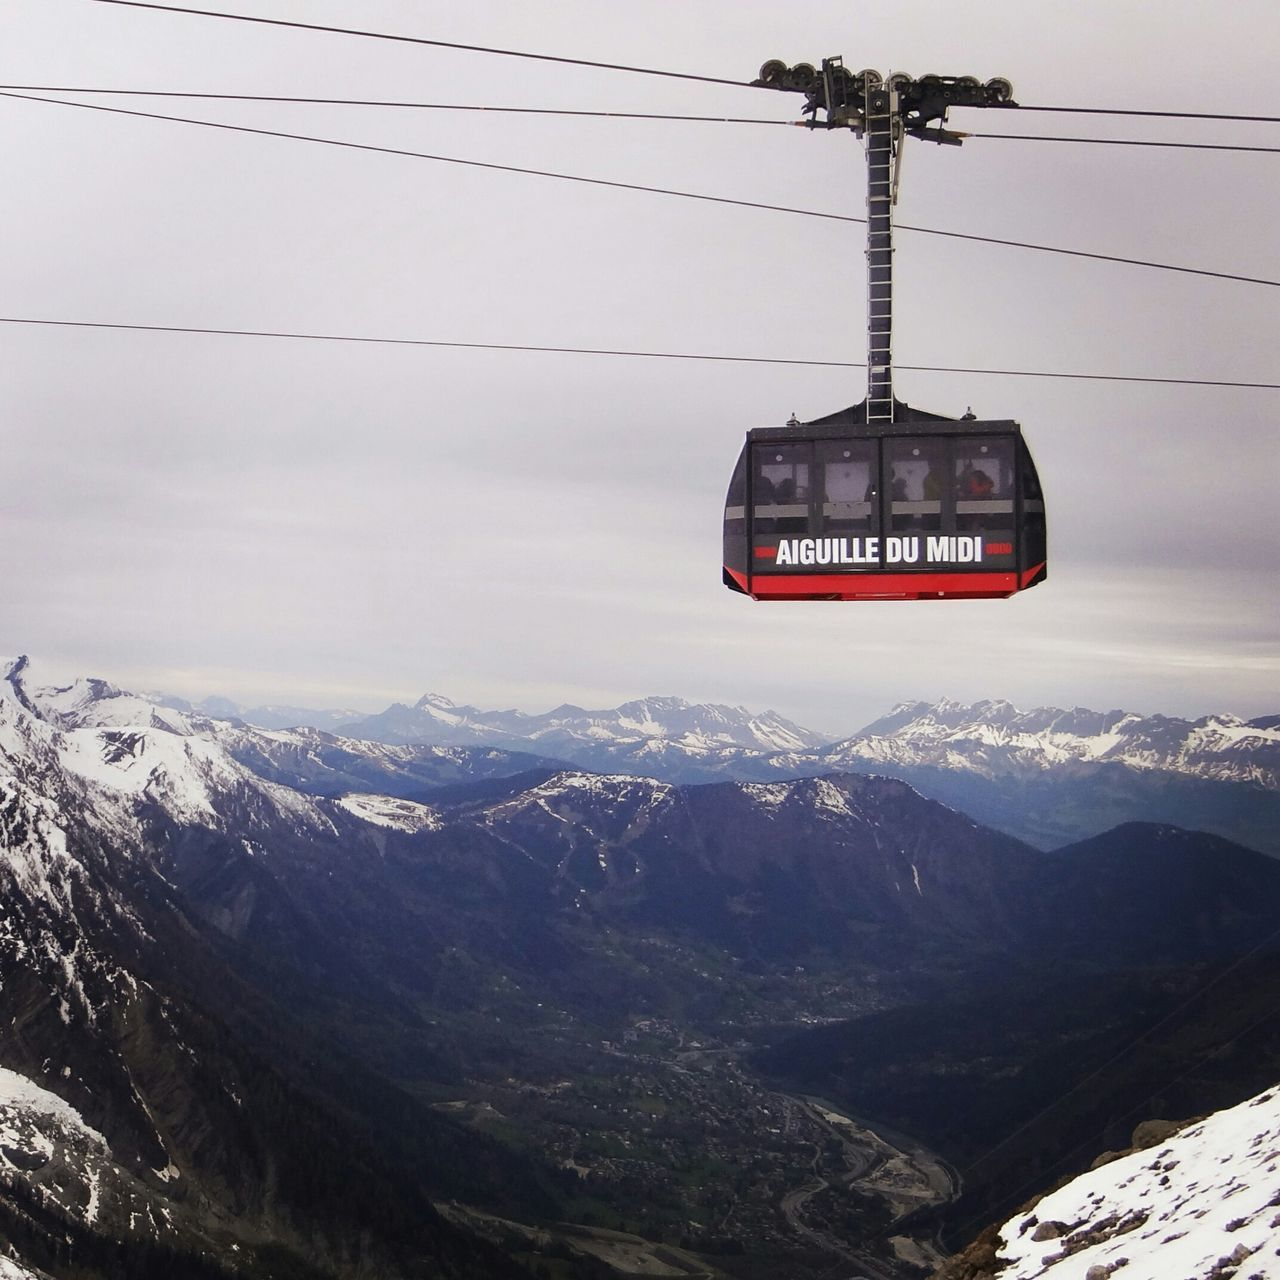 mountain, cable, mountain range, nature, sky, snow, cold temperature, scenics, overhead cable car, beauty in nature, power line, winter, weather, transportation, cloud - sky, landscape, tranquil scene, day, hanging, electricity, snowcapped mountain, tranquility, outdoors, no people, ski lift